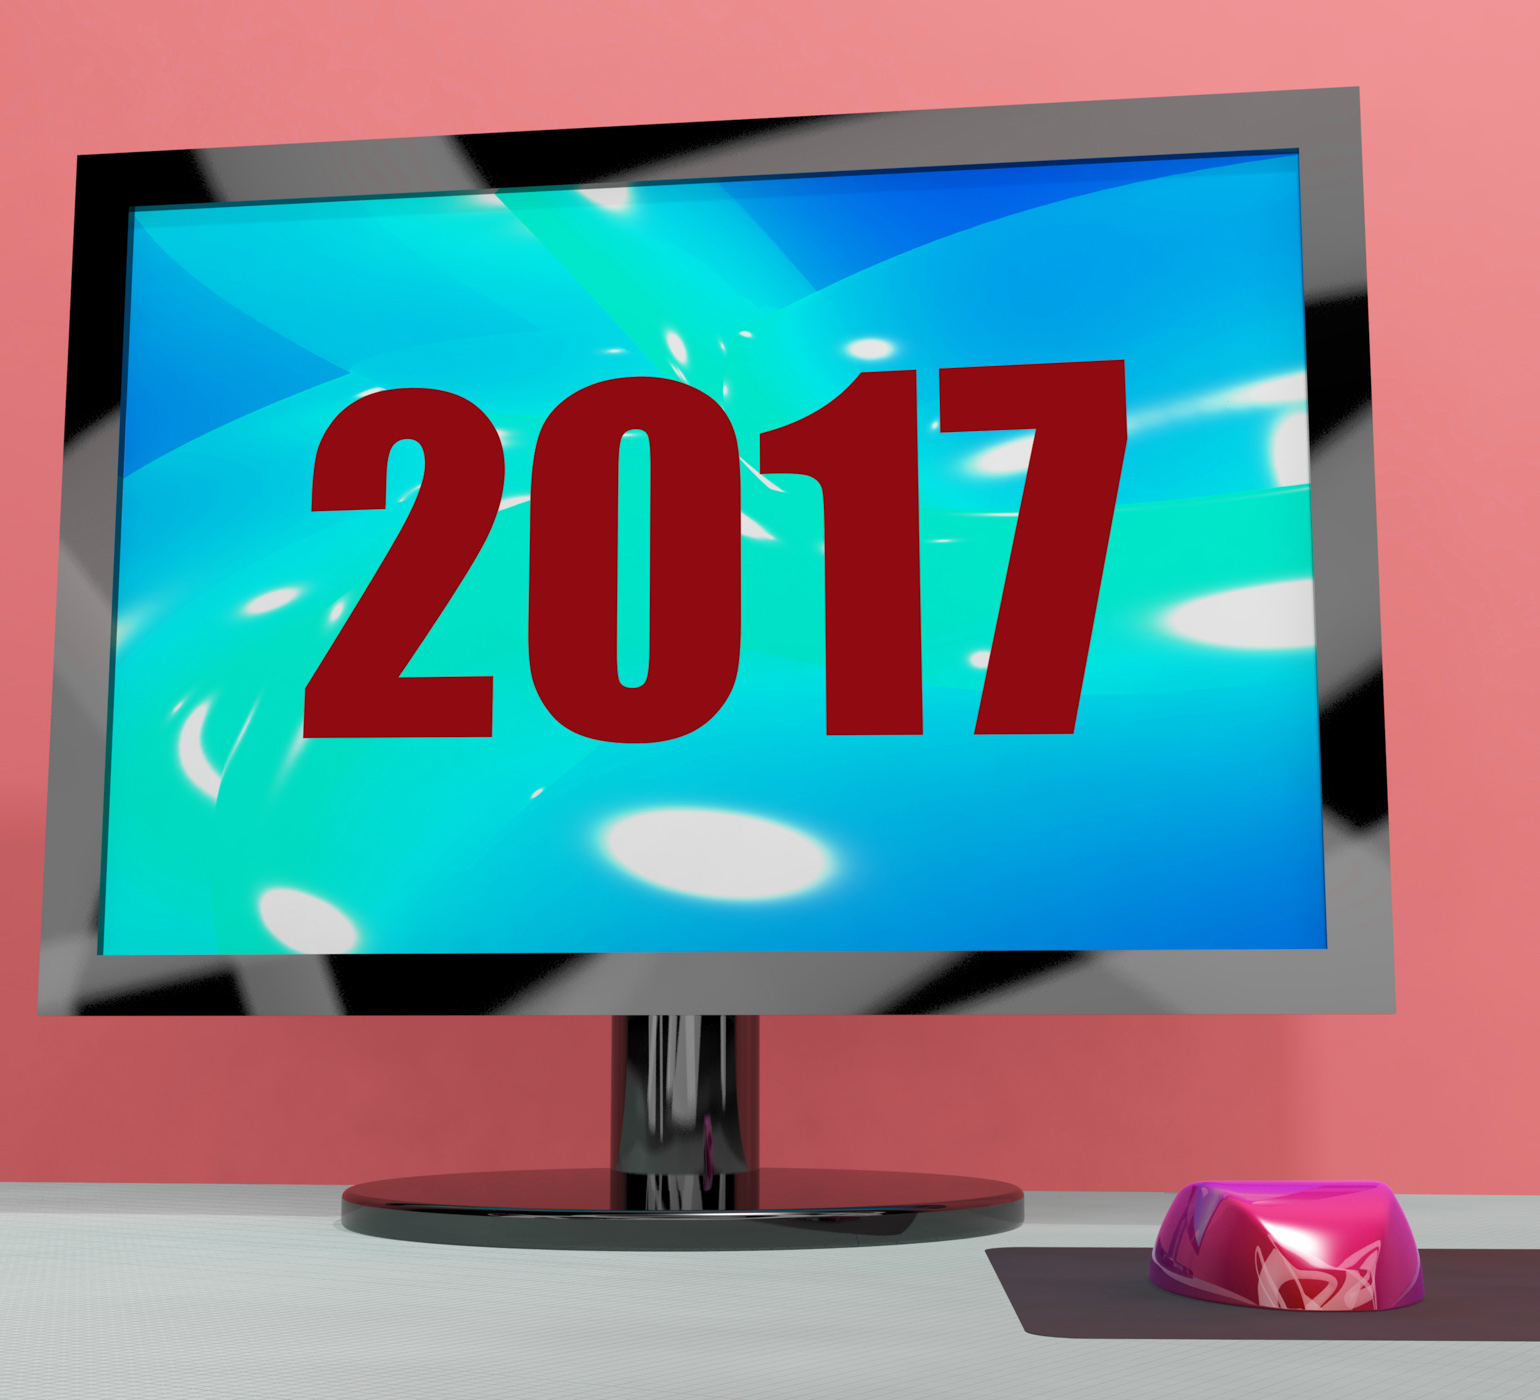 Two thousand and seventeen on monitor shows year 2017 photo